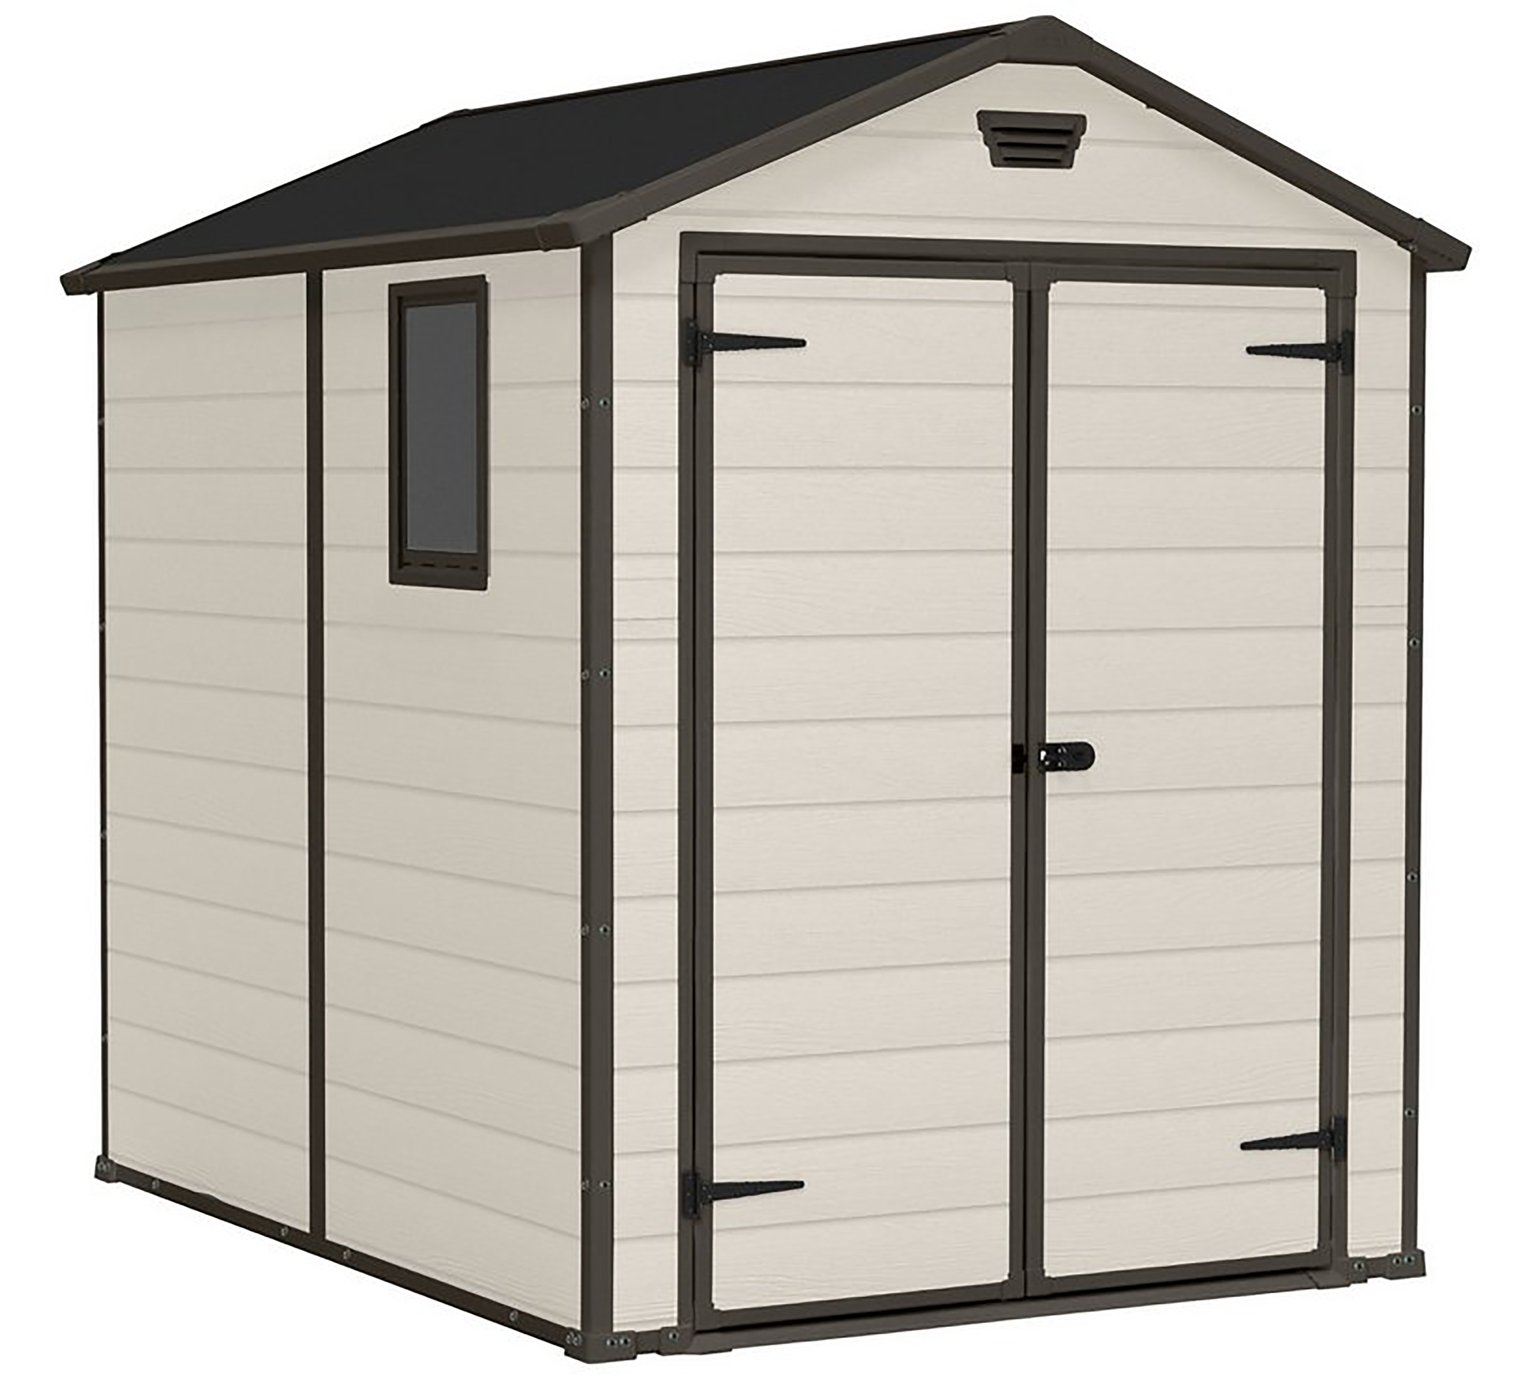 Keter Manor Apex Garden Storage Shed 6 x 8ft - Beige/Brown